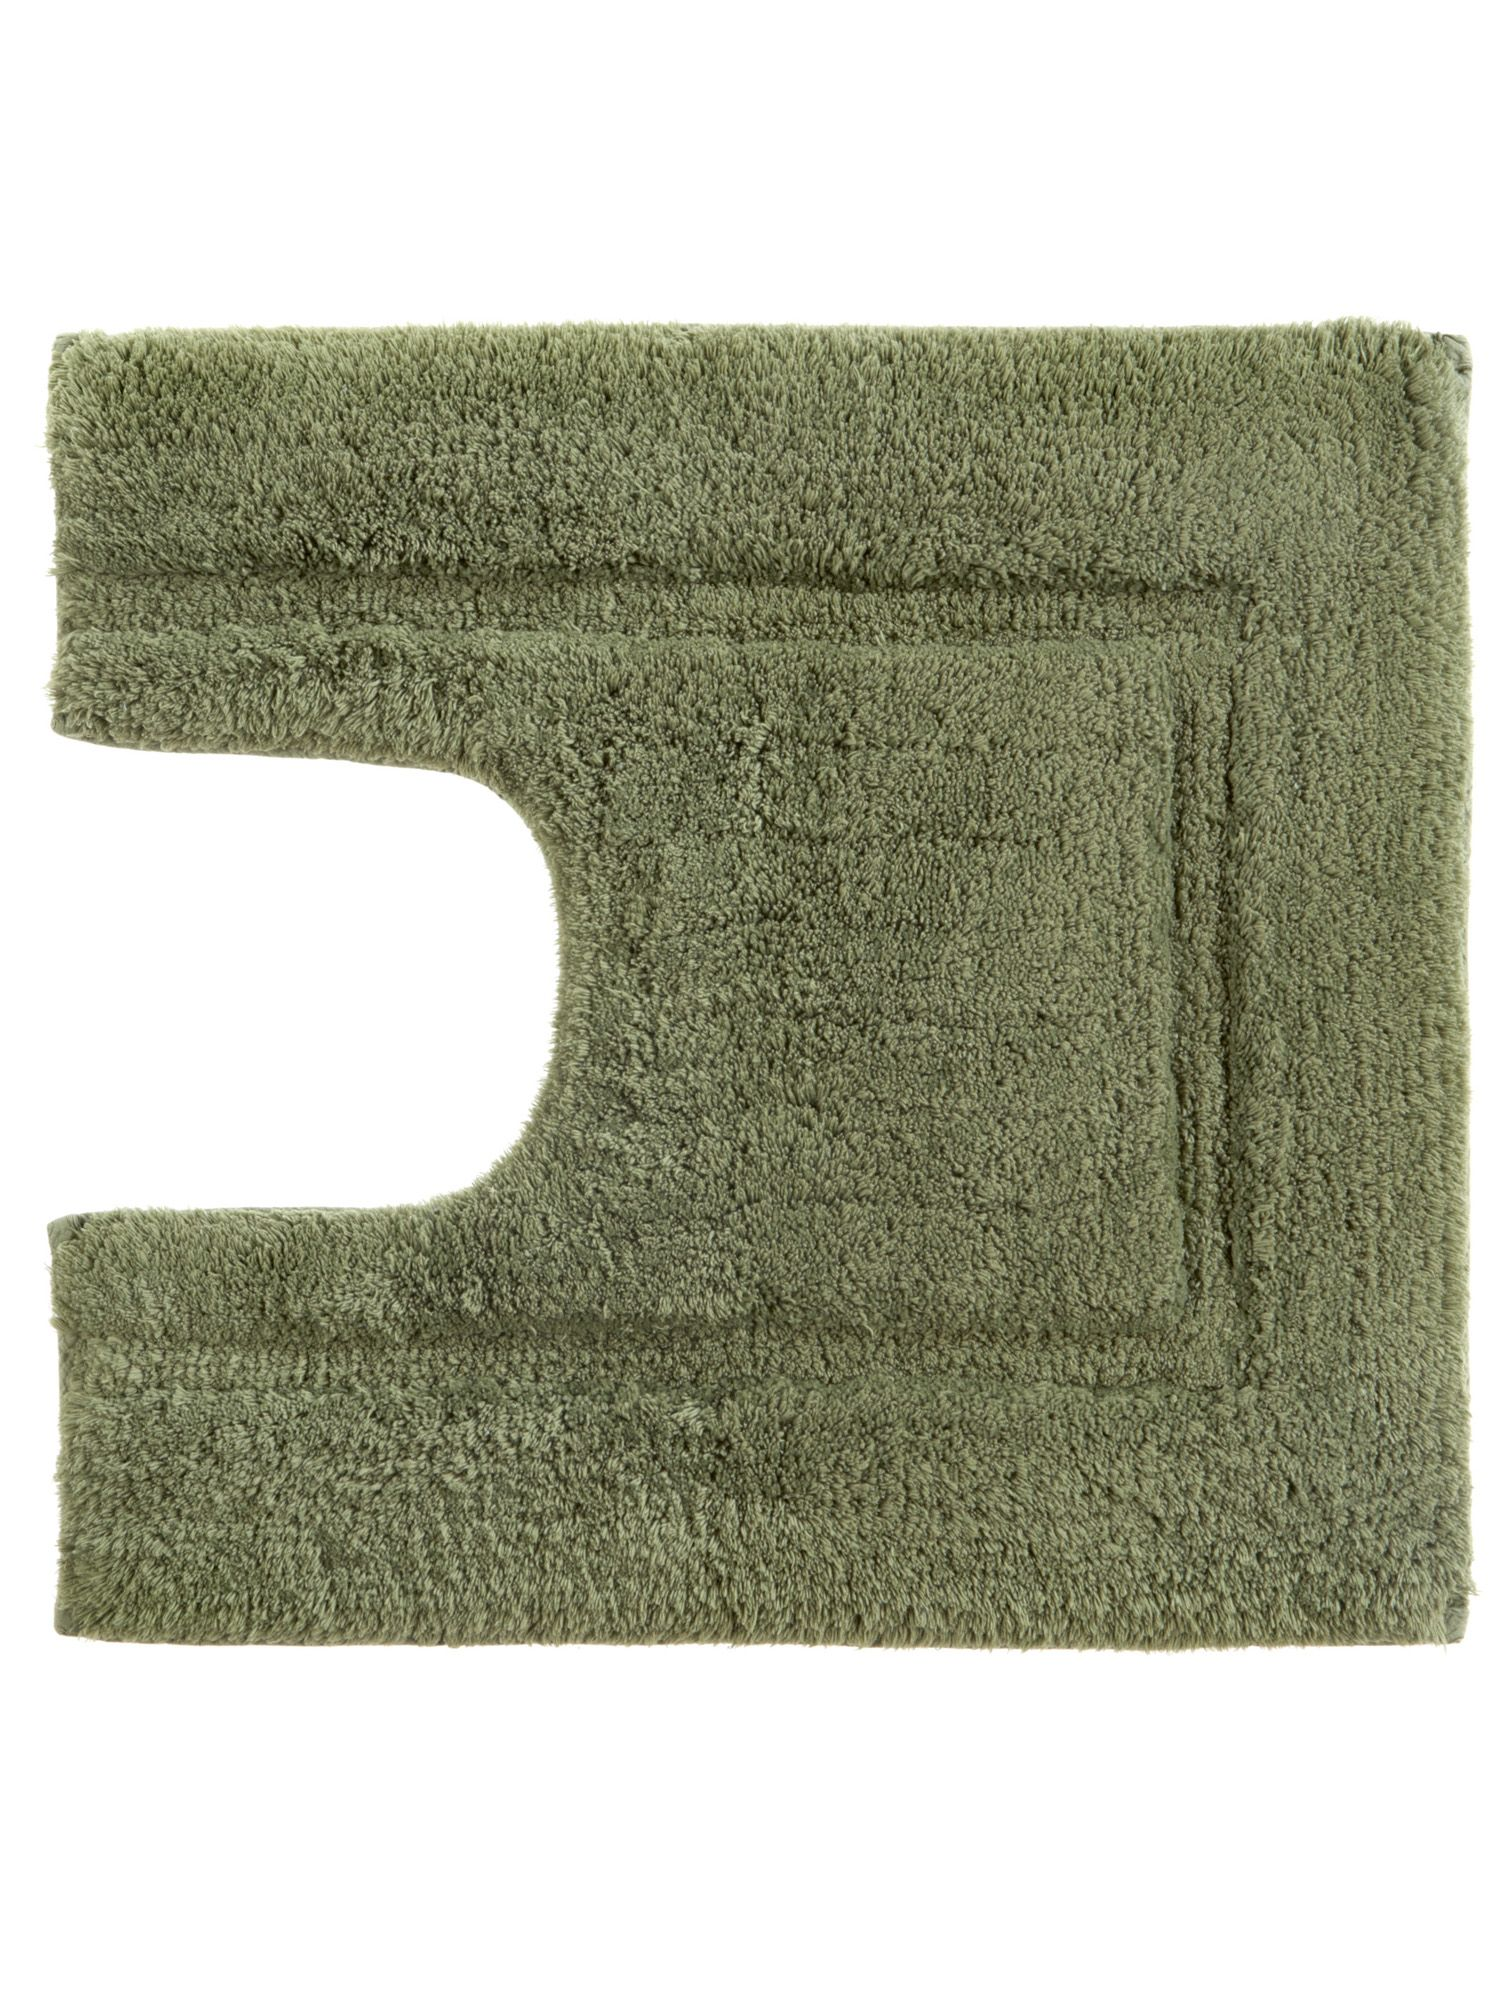 Tufted ped mat 5x55 moss by Christy